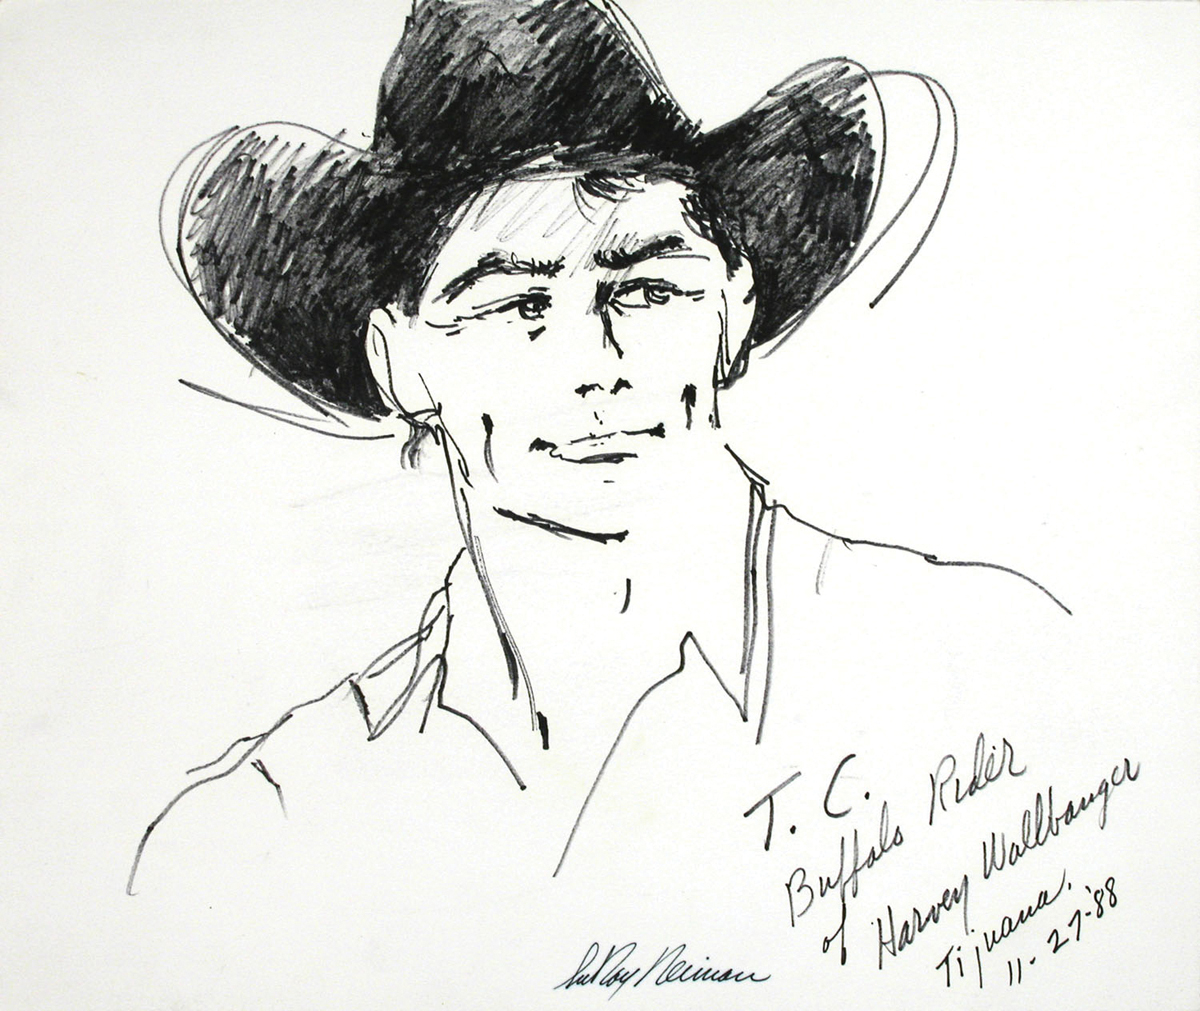 T.C. Buffalo Rider, Mixed Media on Paper, 12.75 X 15 in, 1988